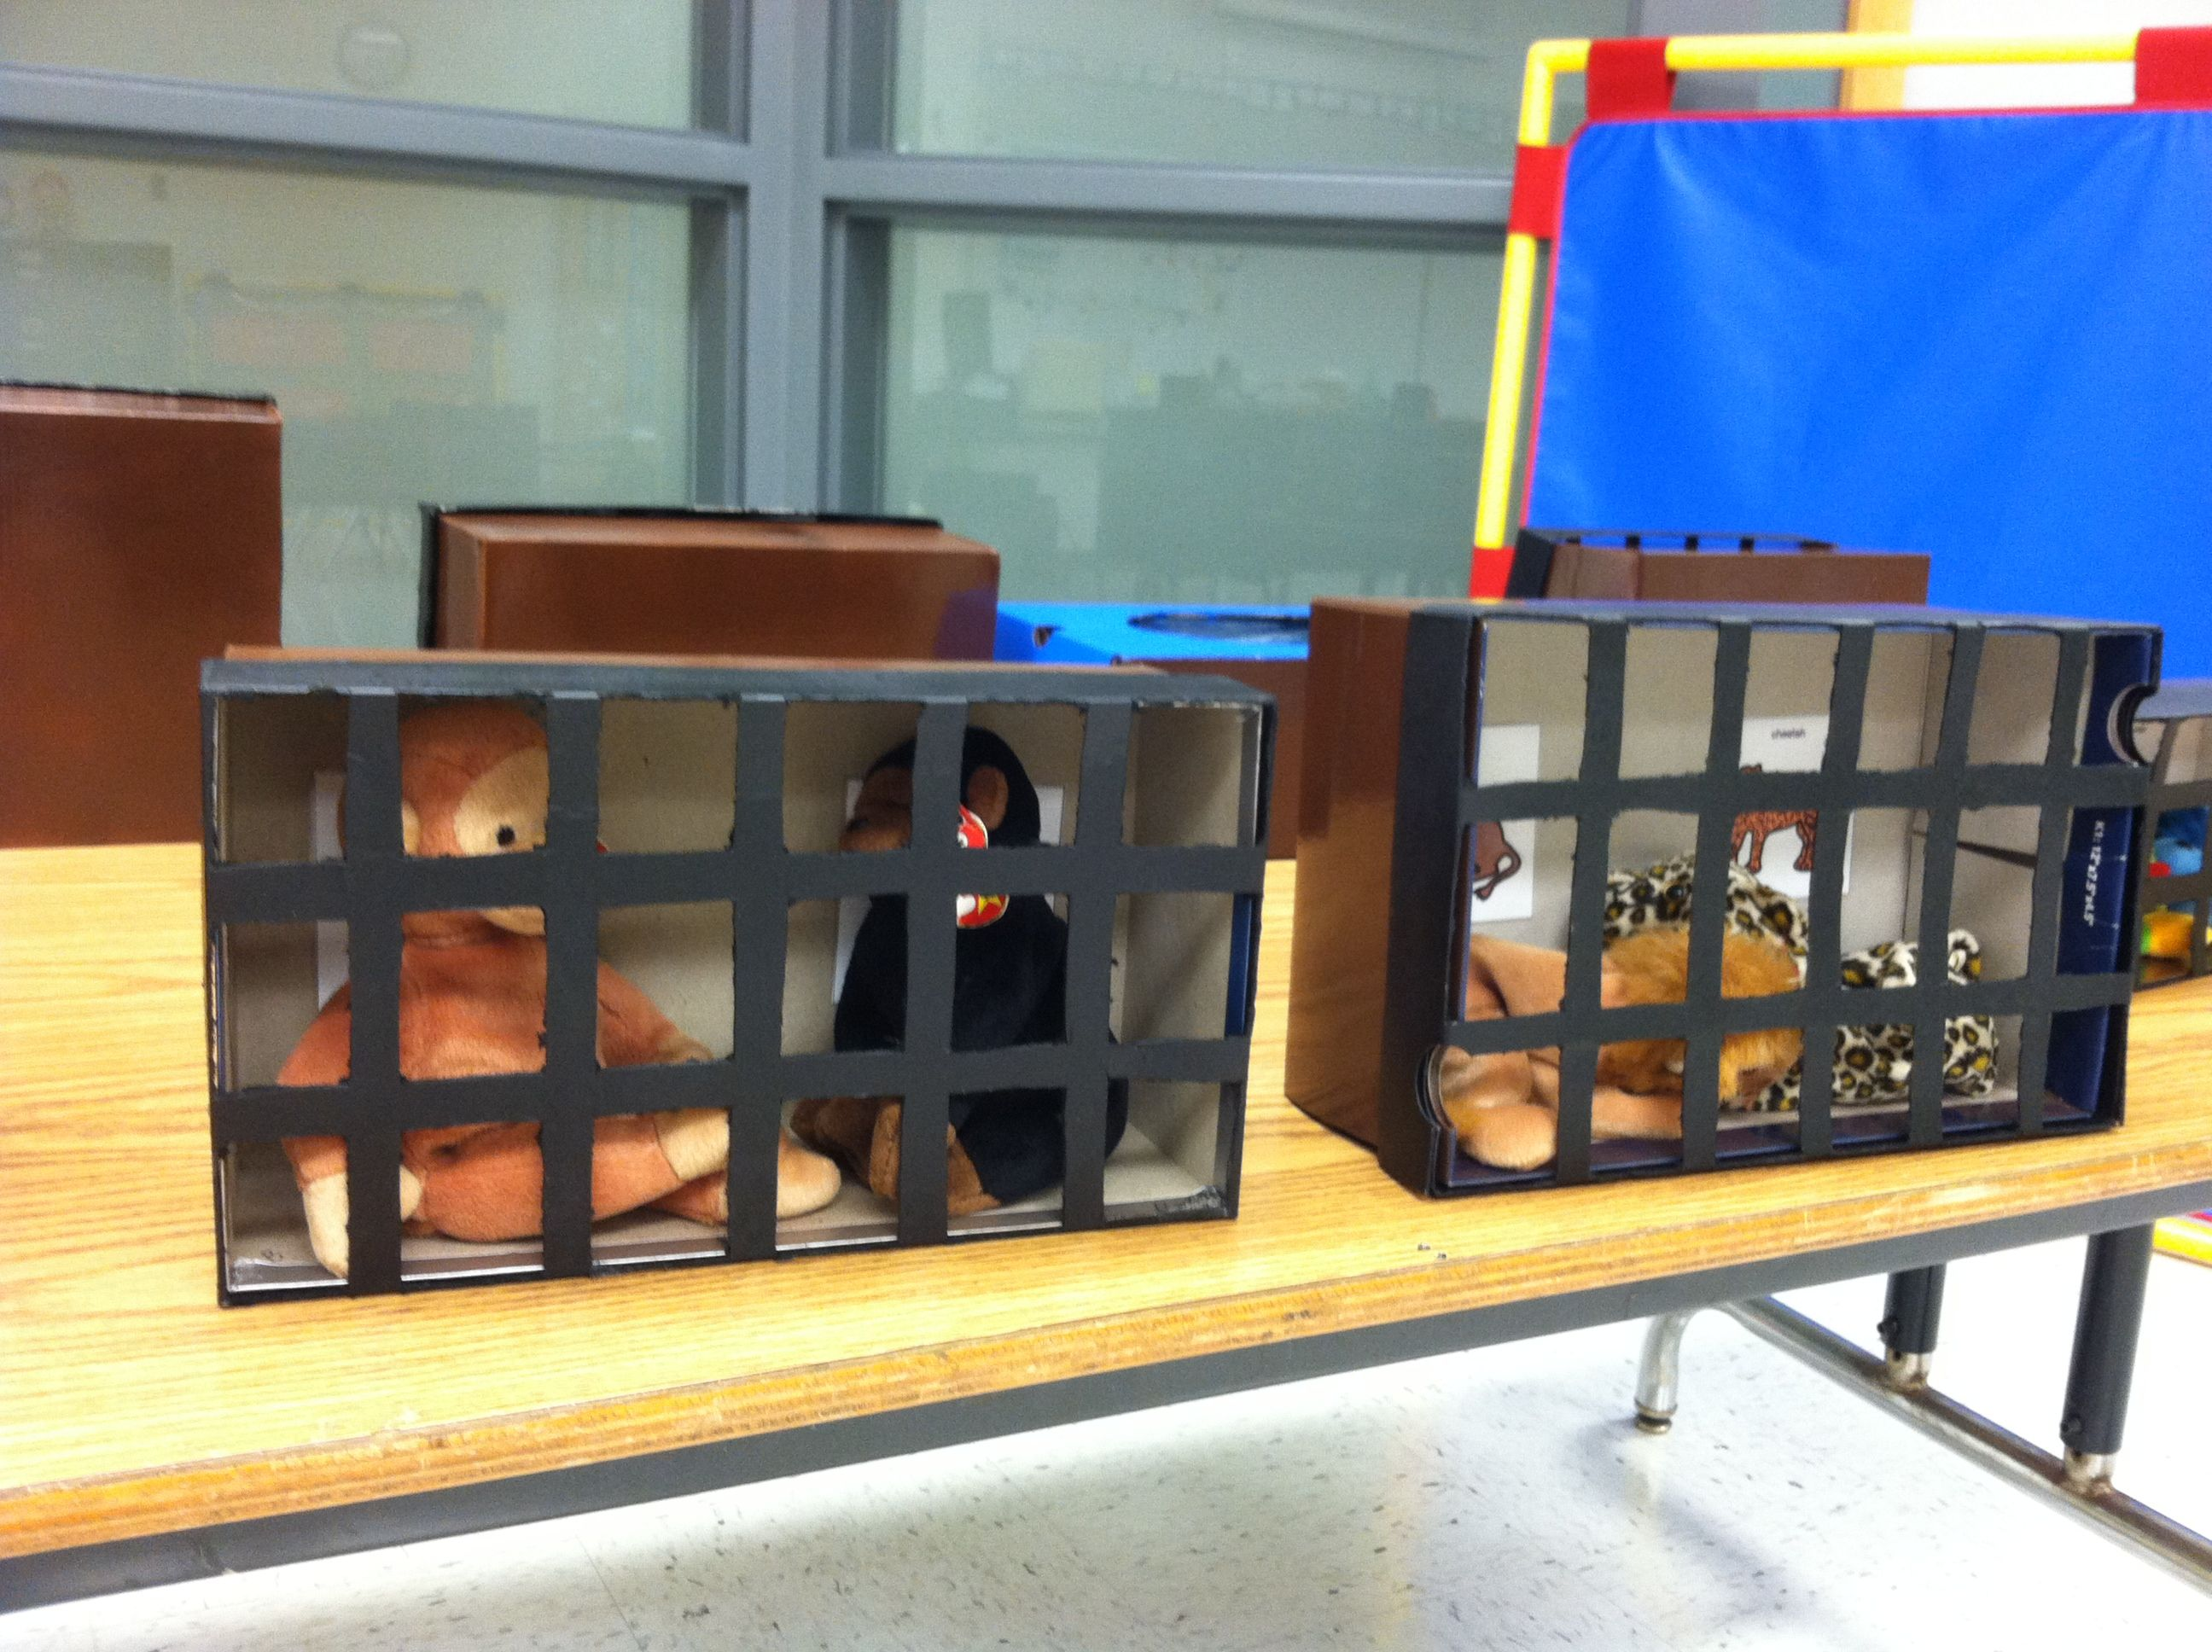 30 Shoe Box Craft Ideas: Zoo Cages For Preschoolers Made Out Of Shoe Boxes.